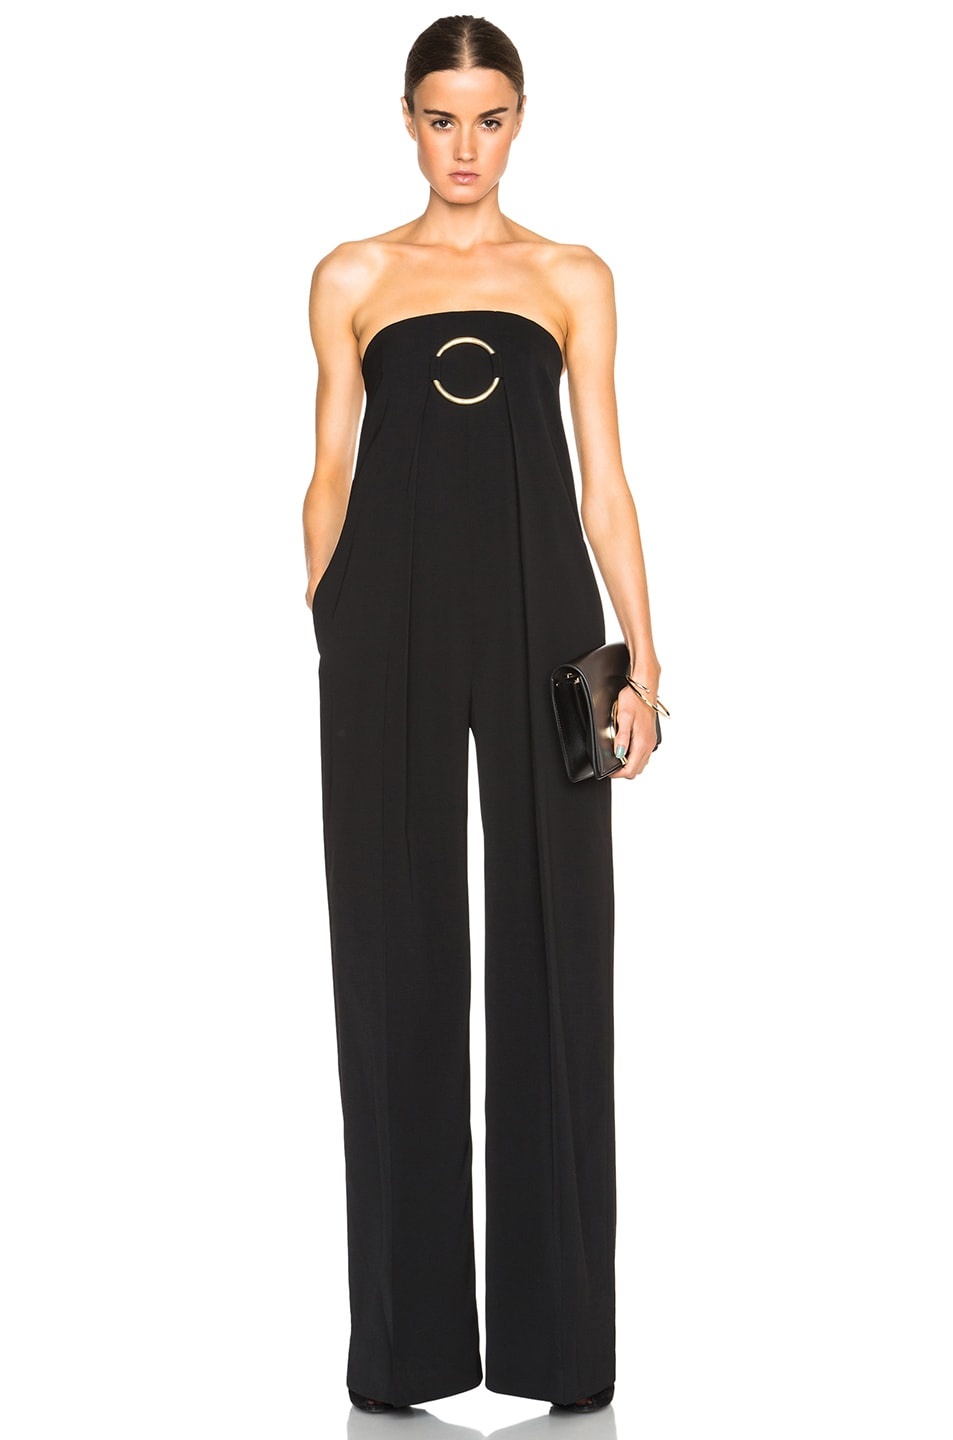 45d74b8b4b55 Image 1 of Stella McCartney Clements Dry Wool Jumpsuit in Black